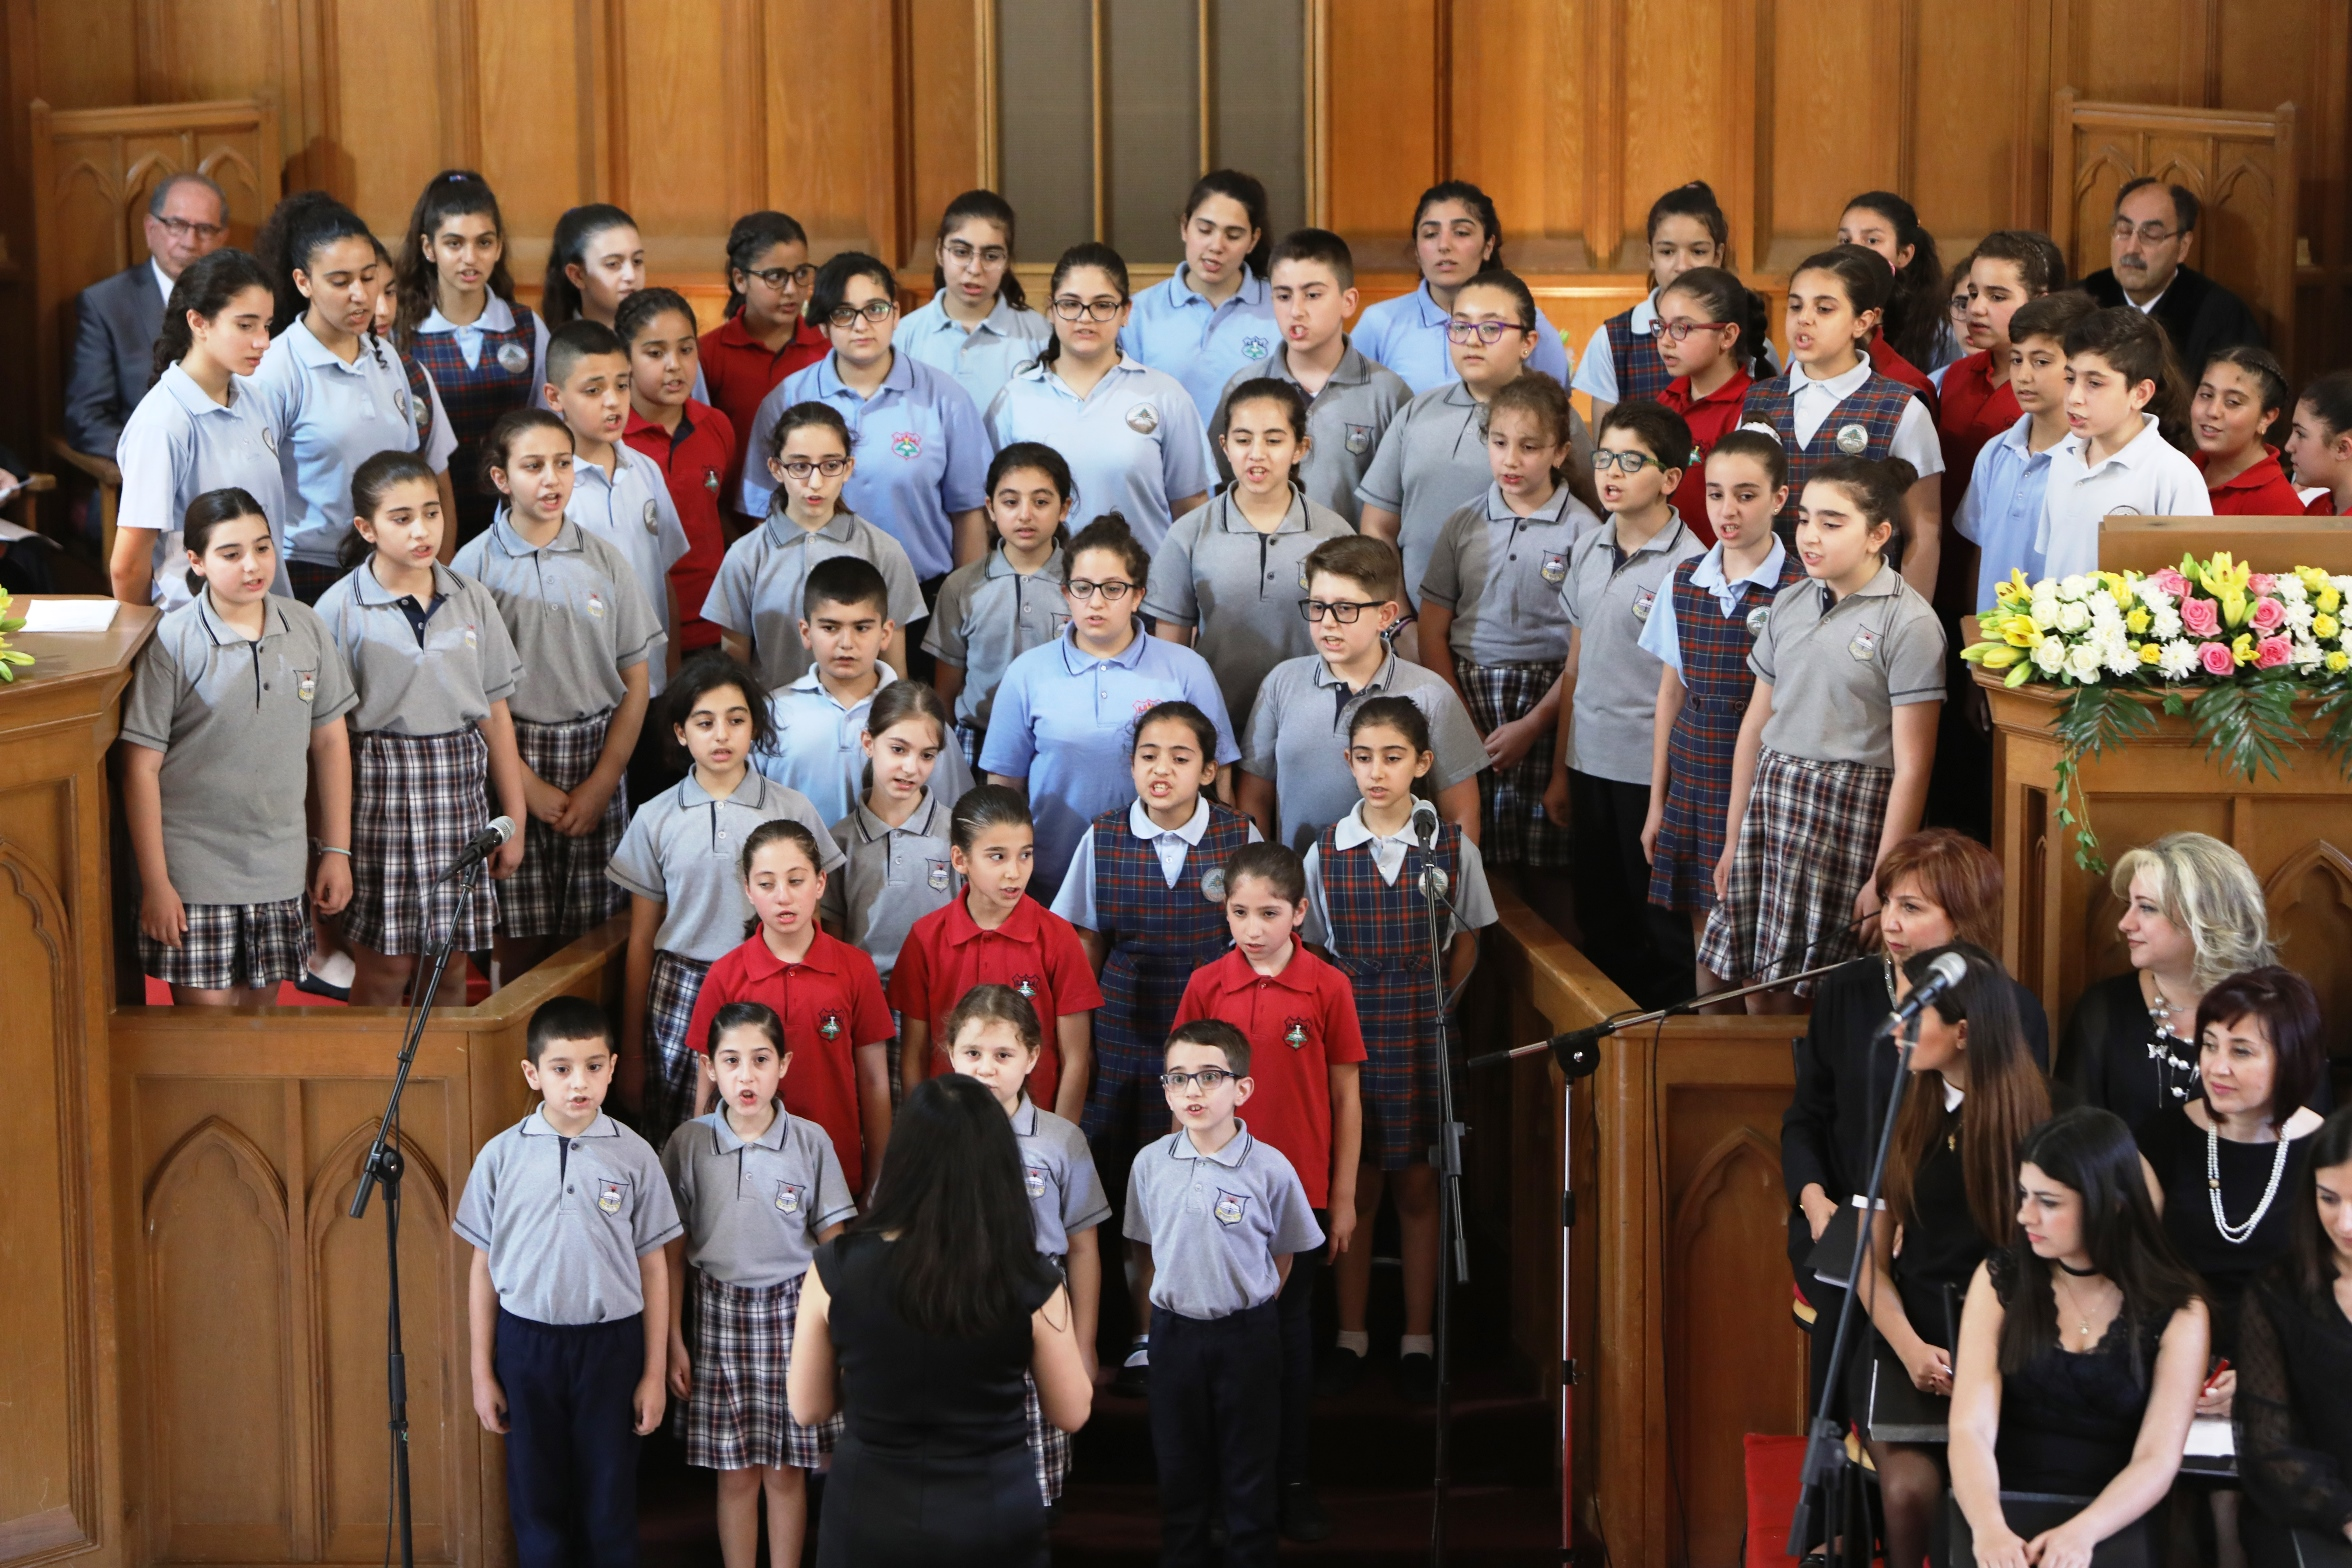 Lebanon_Maria_Bakalian_Children's_Choir.jpeg